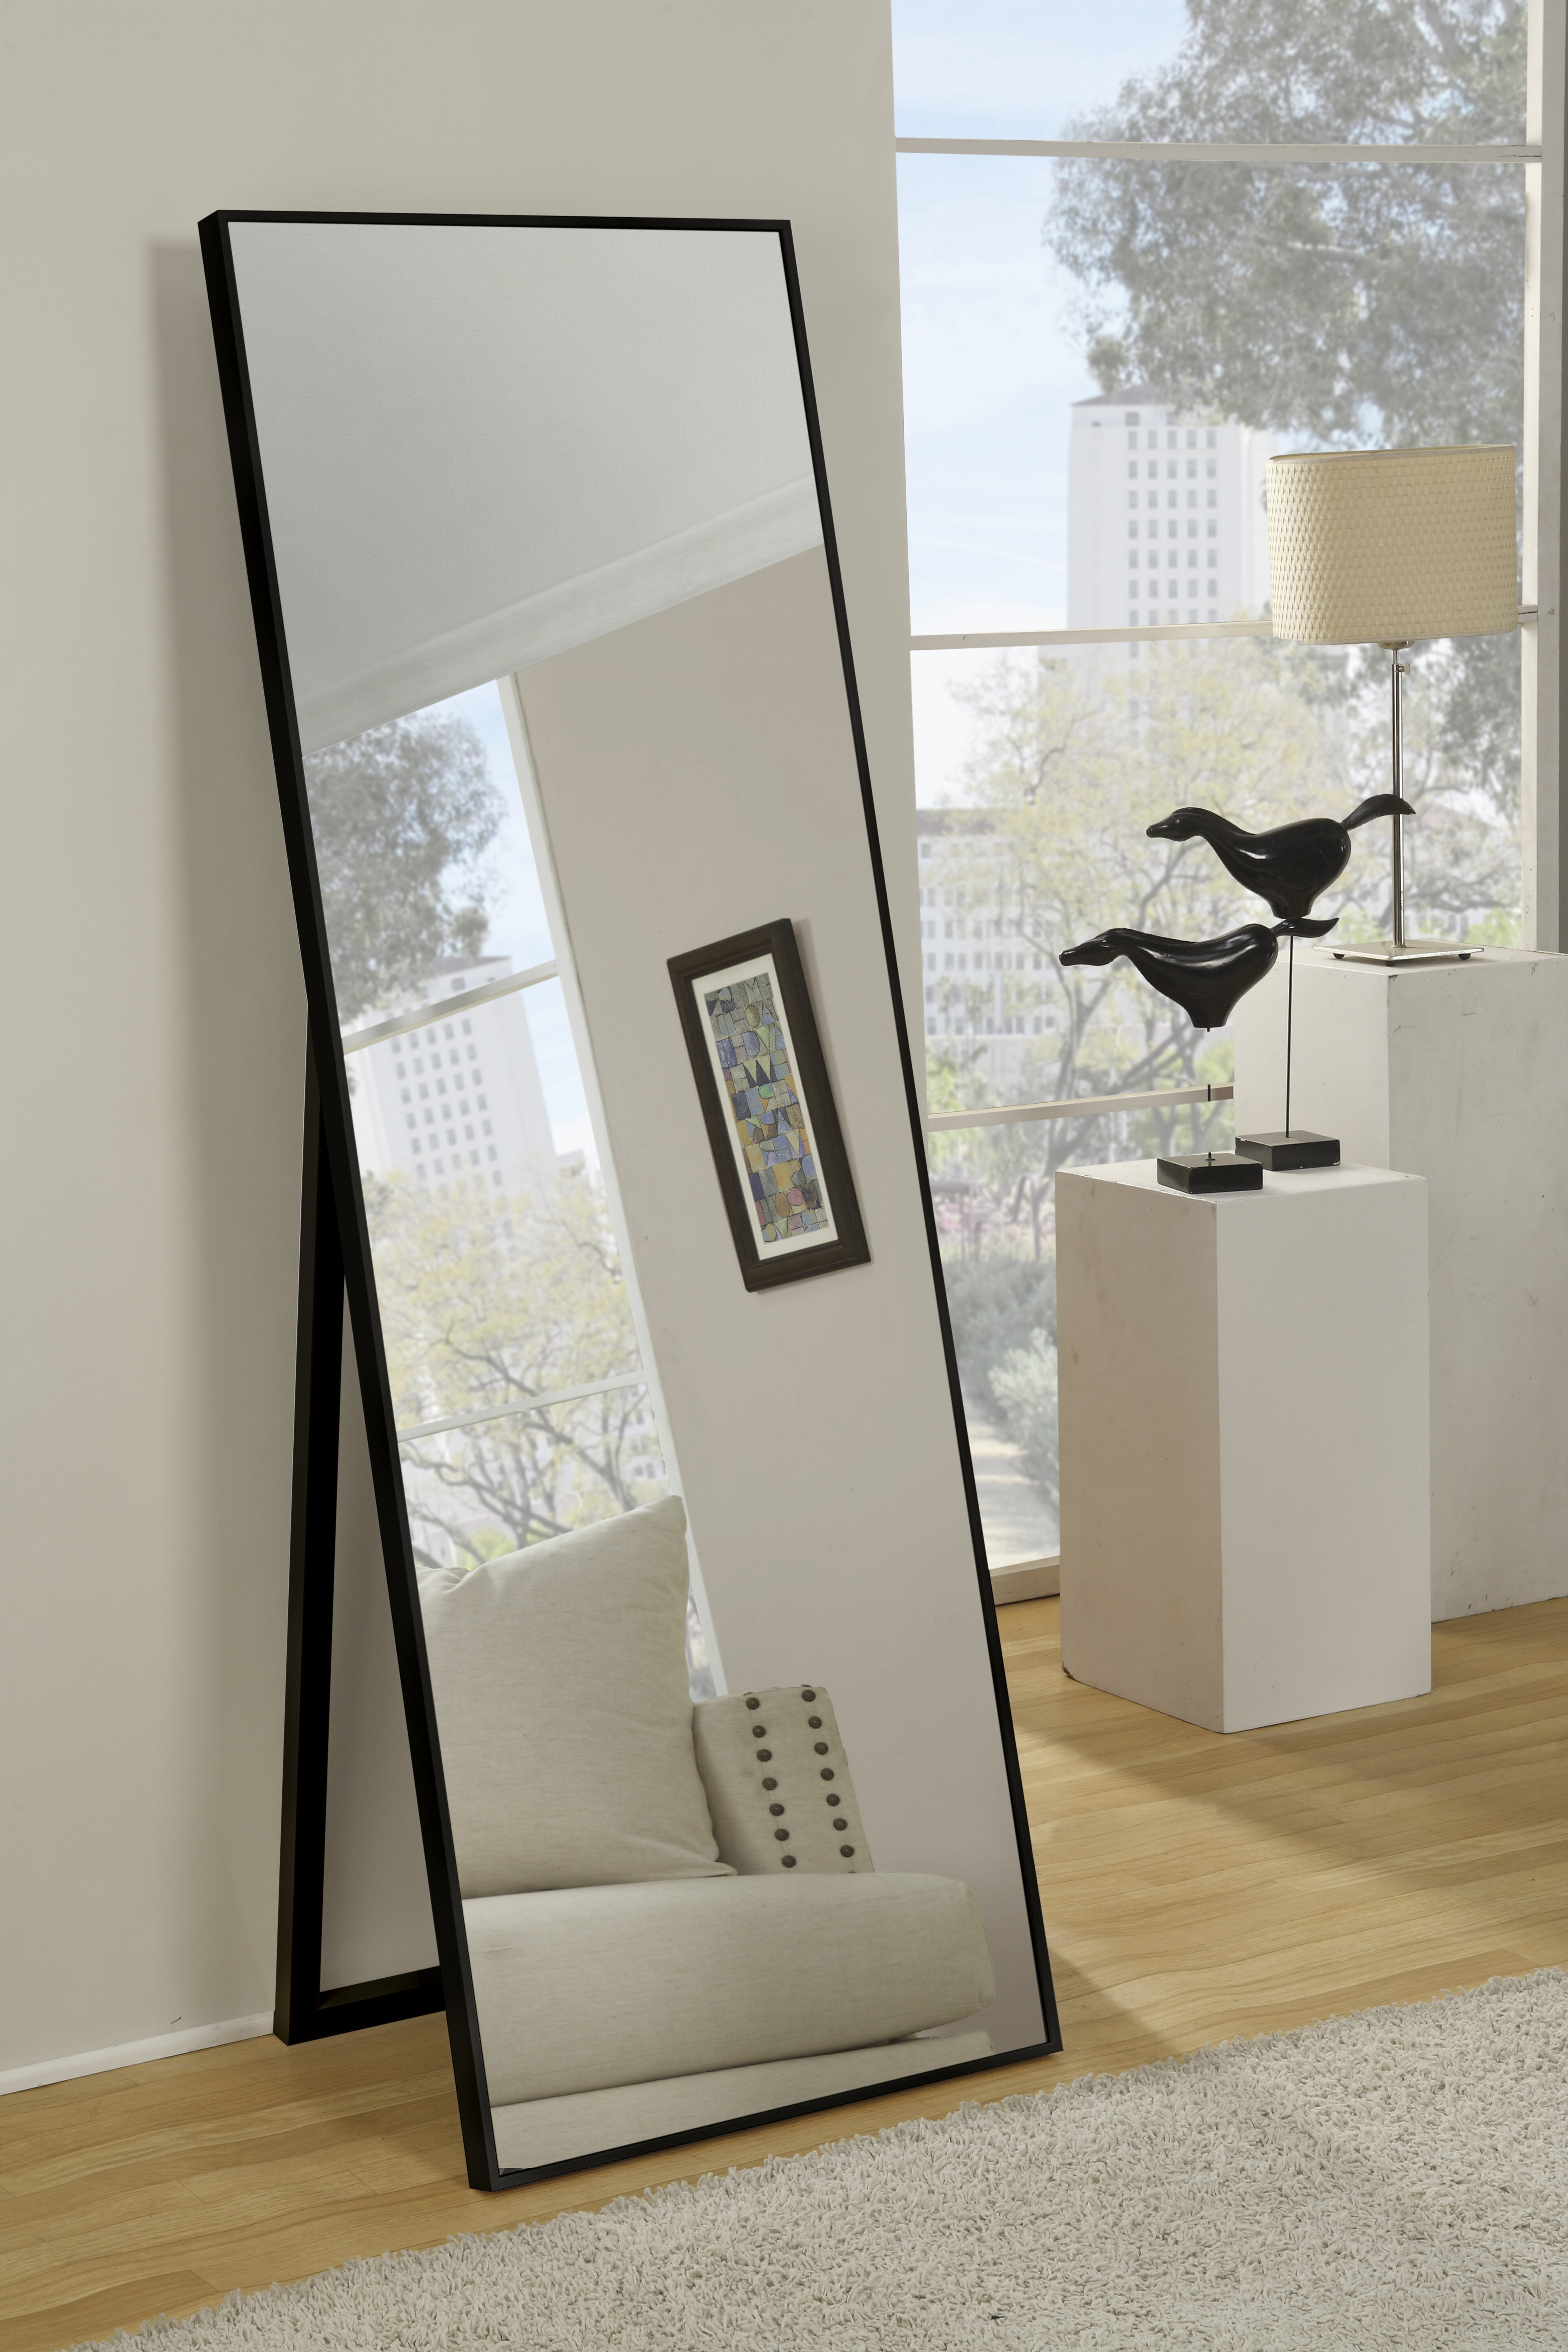 Traub Standing Modern & Contemporary Beveled Full Length Mirror Intended For Modern & Contemporary Full Length Mirrors (View 8 of 30)